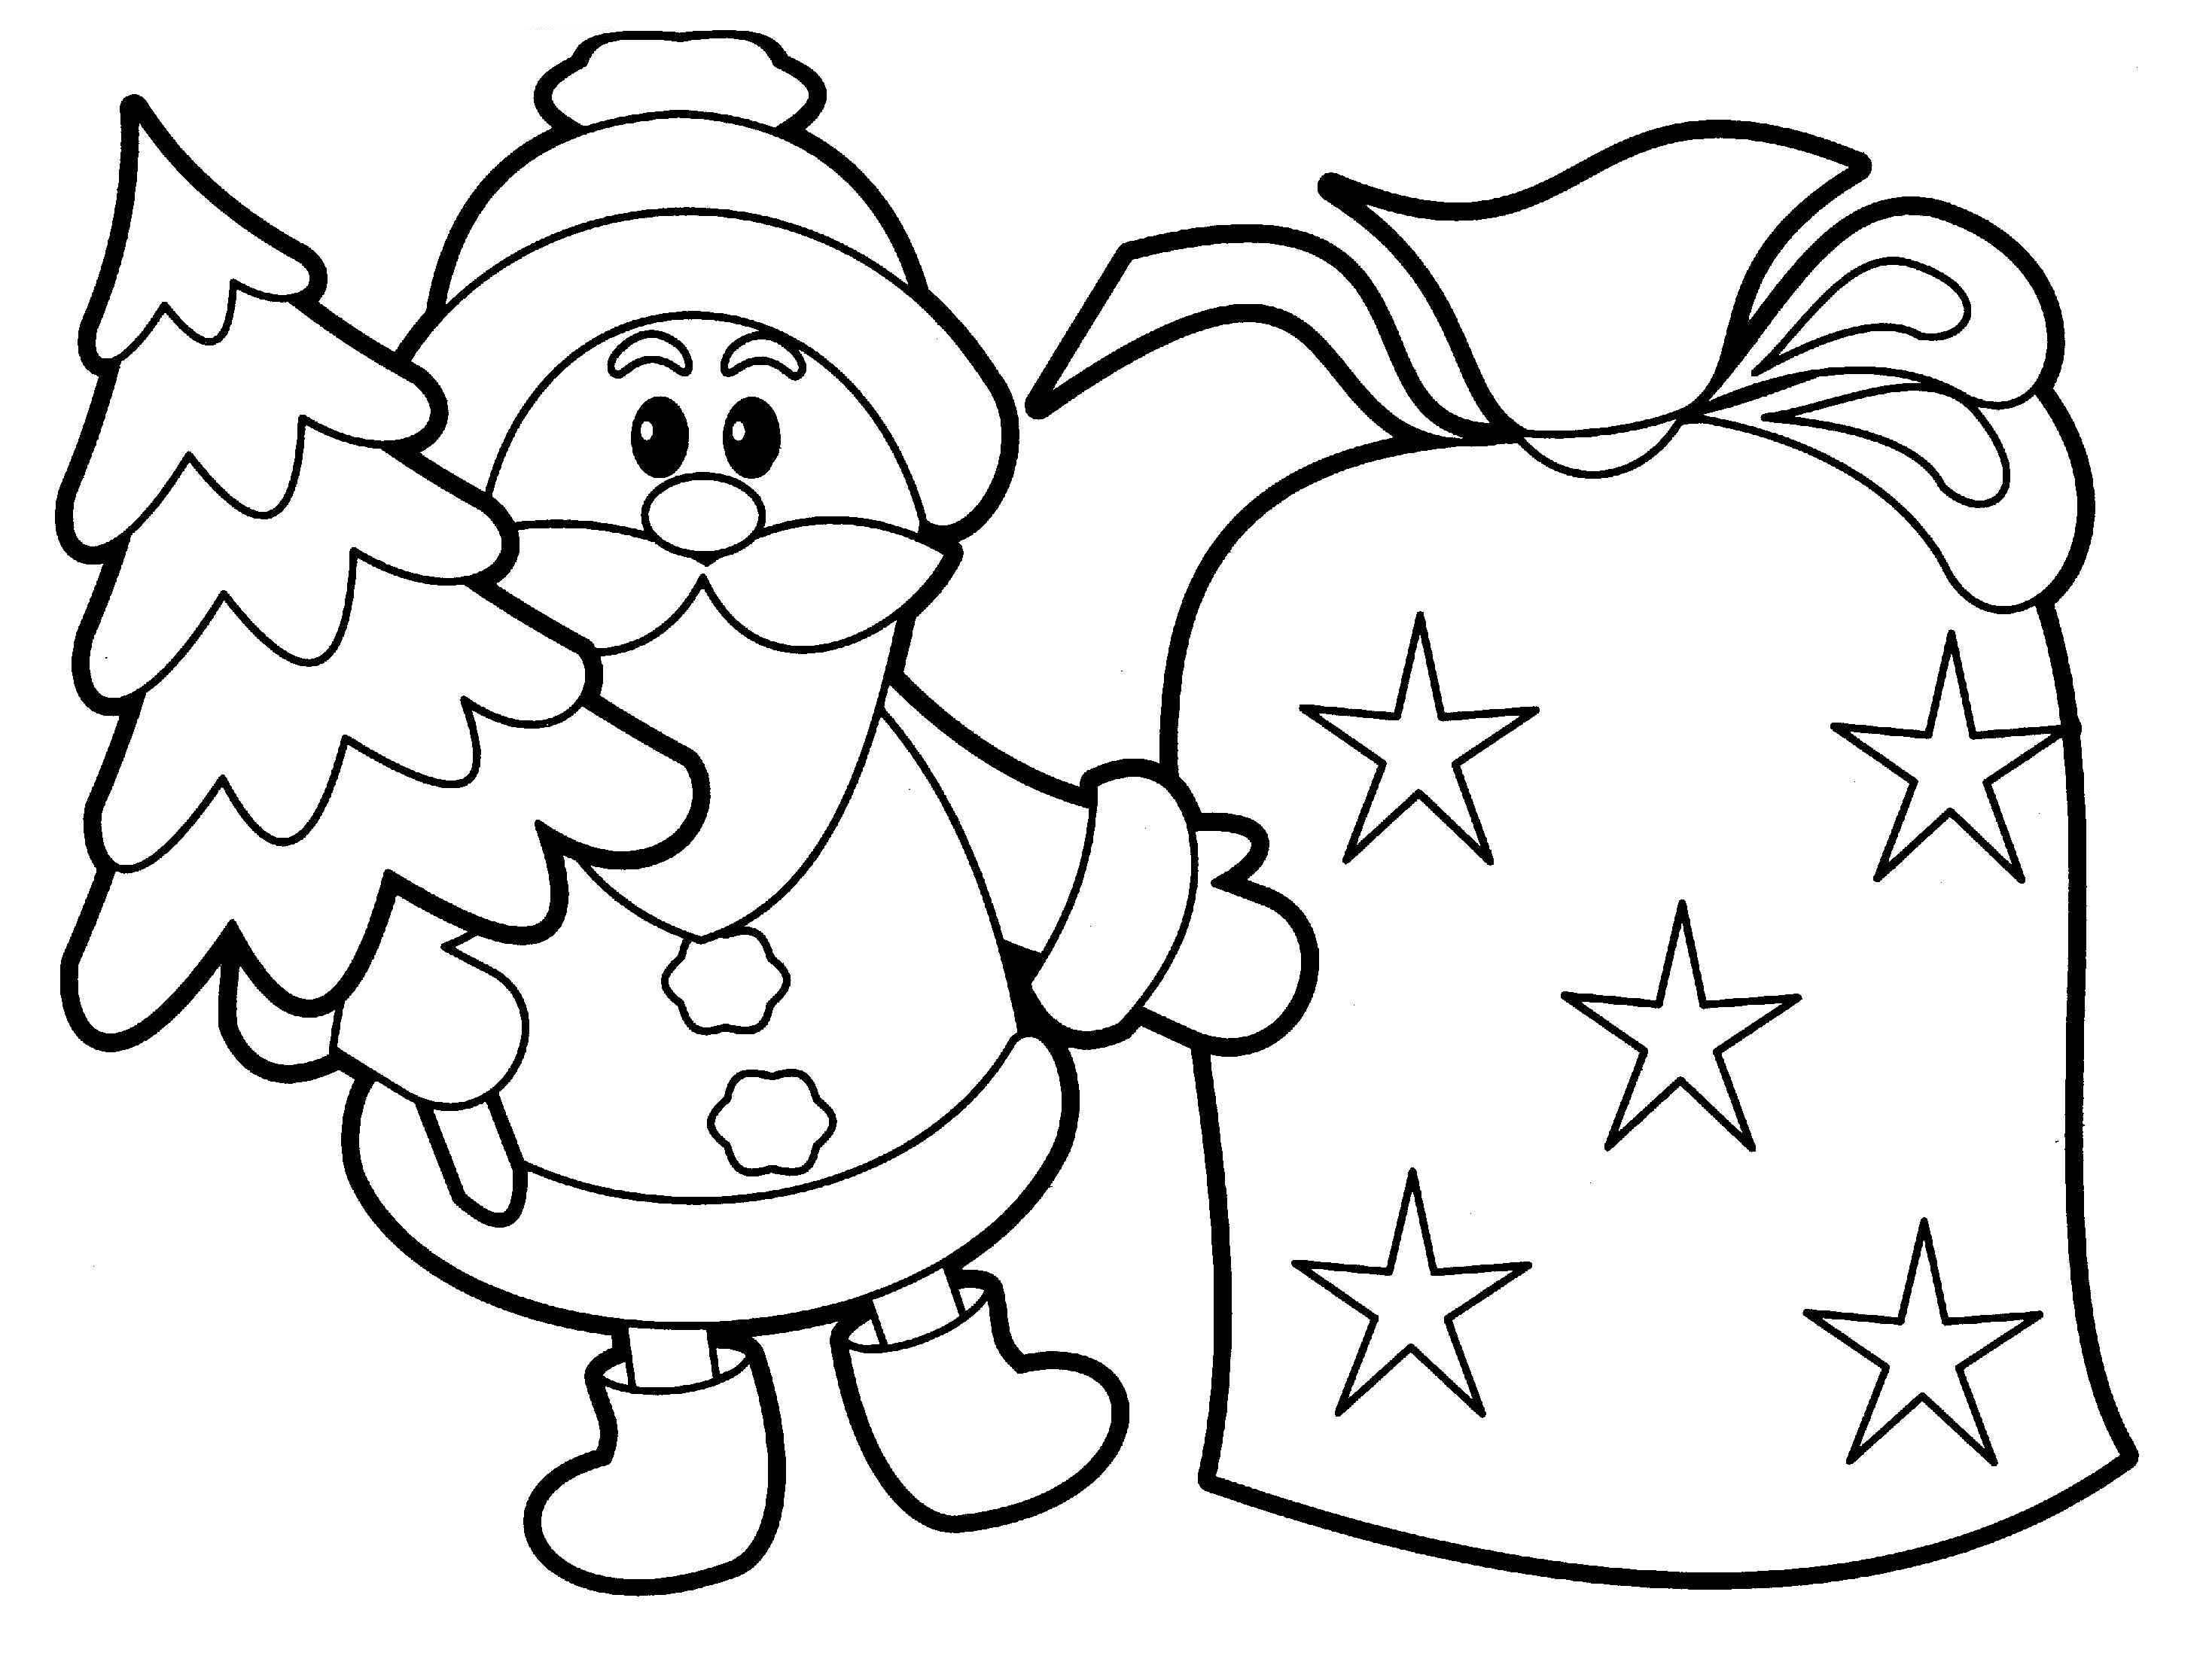 Printable coloring pages christmas - Childrens Christmas Coloring Pages Printable